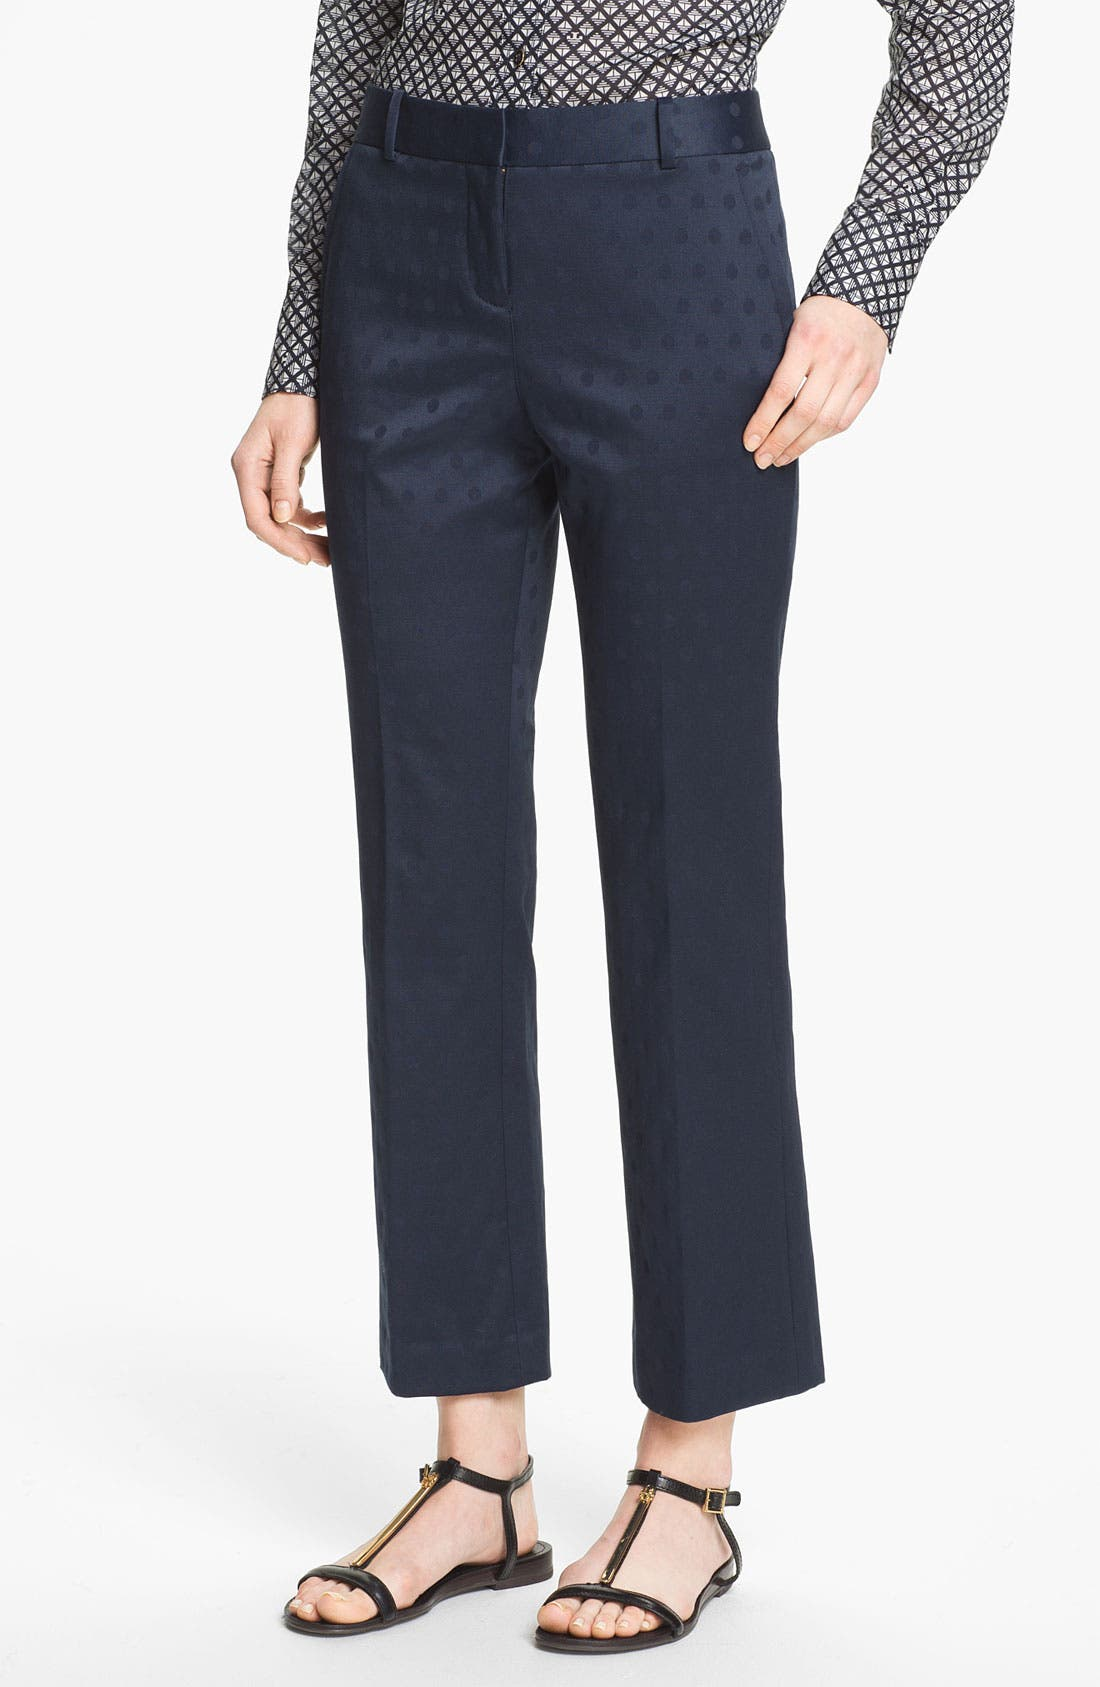 Alternate Image 1 Selected - Tory Burch 'Harp' Jacquard Pants